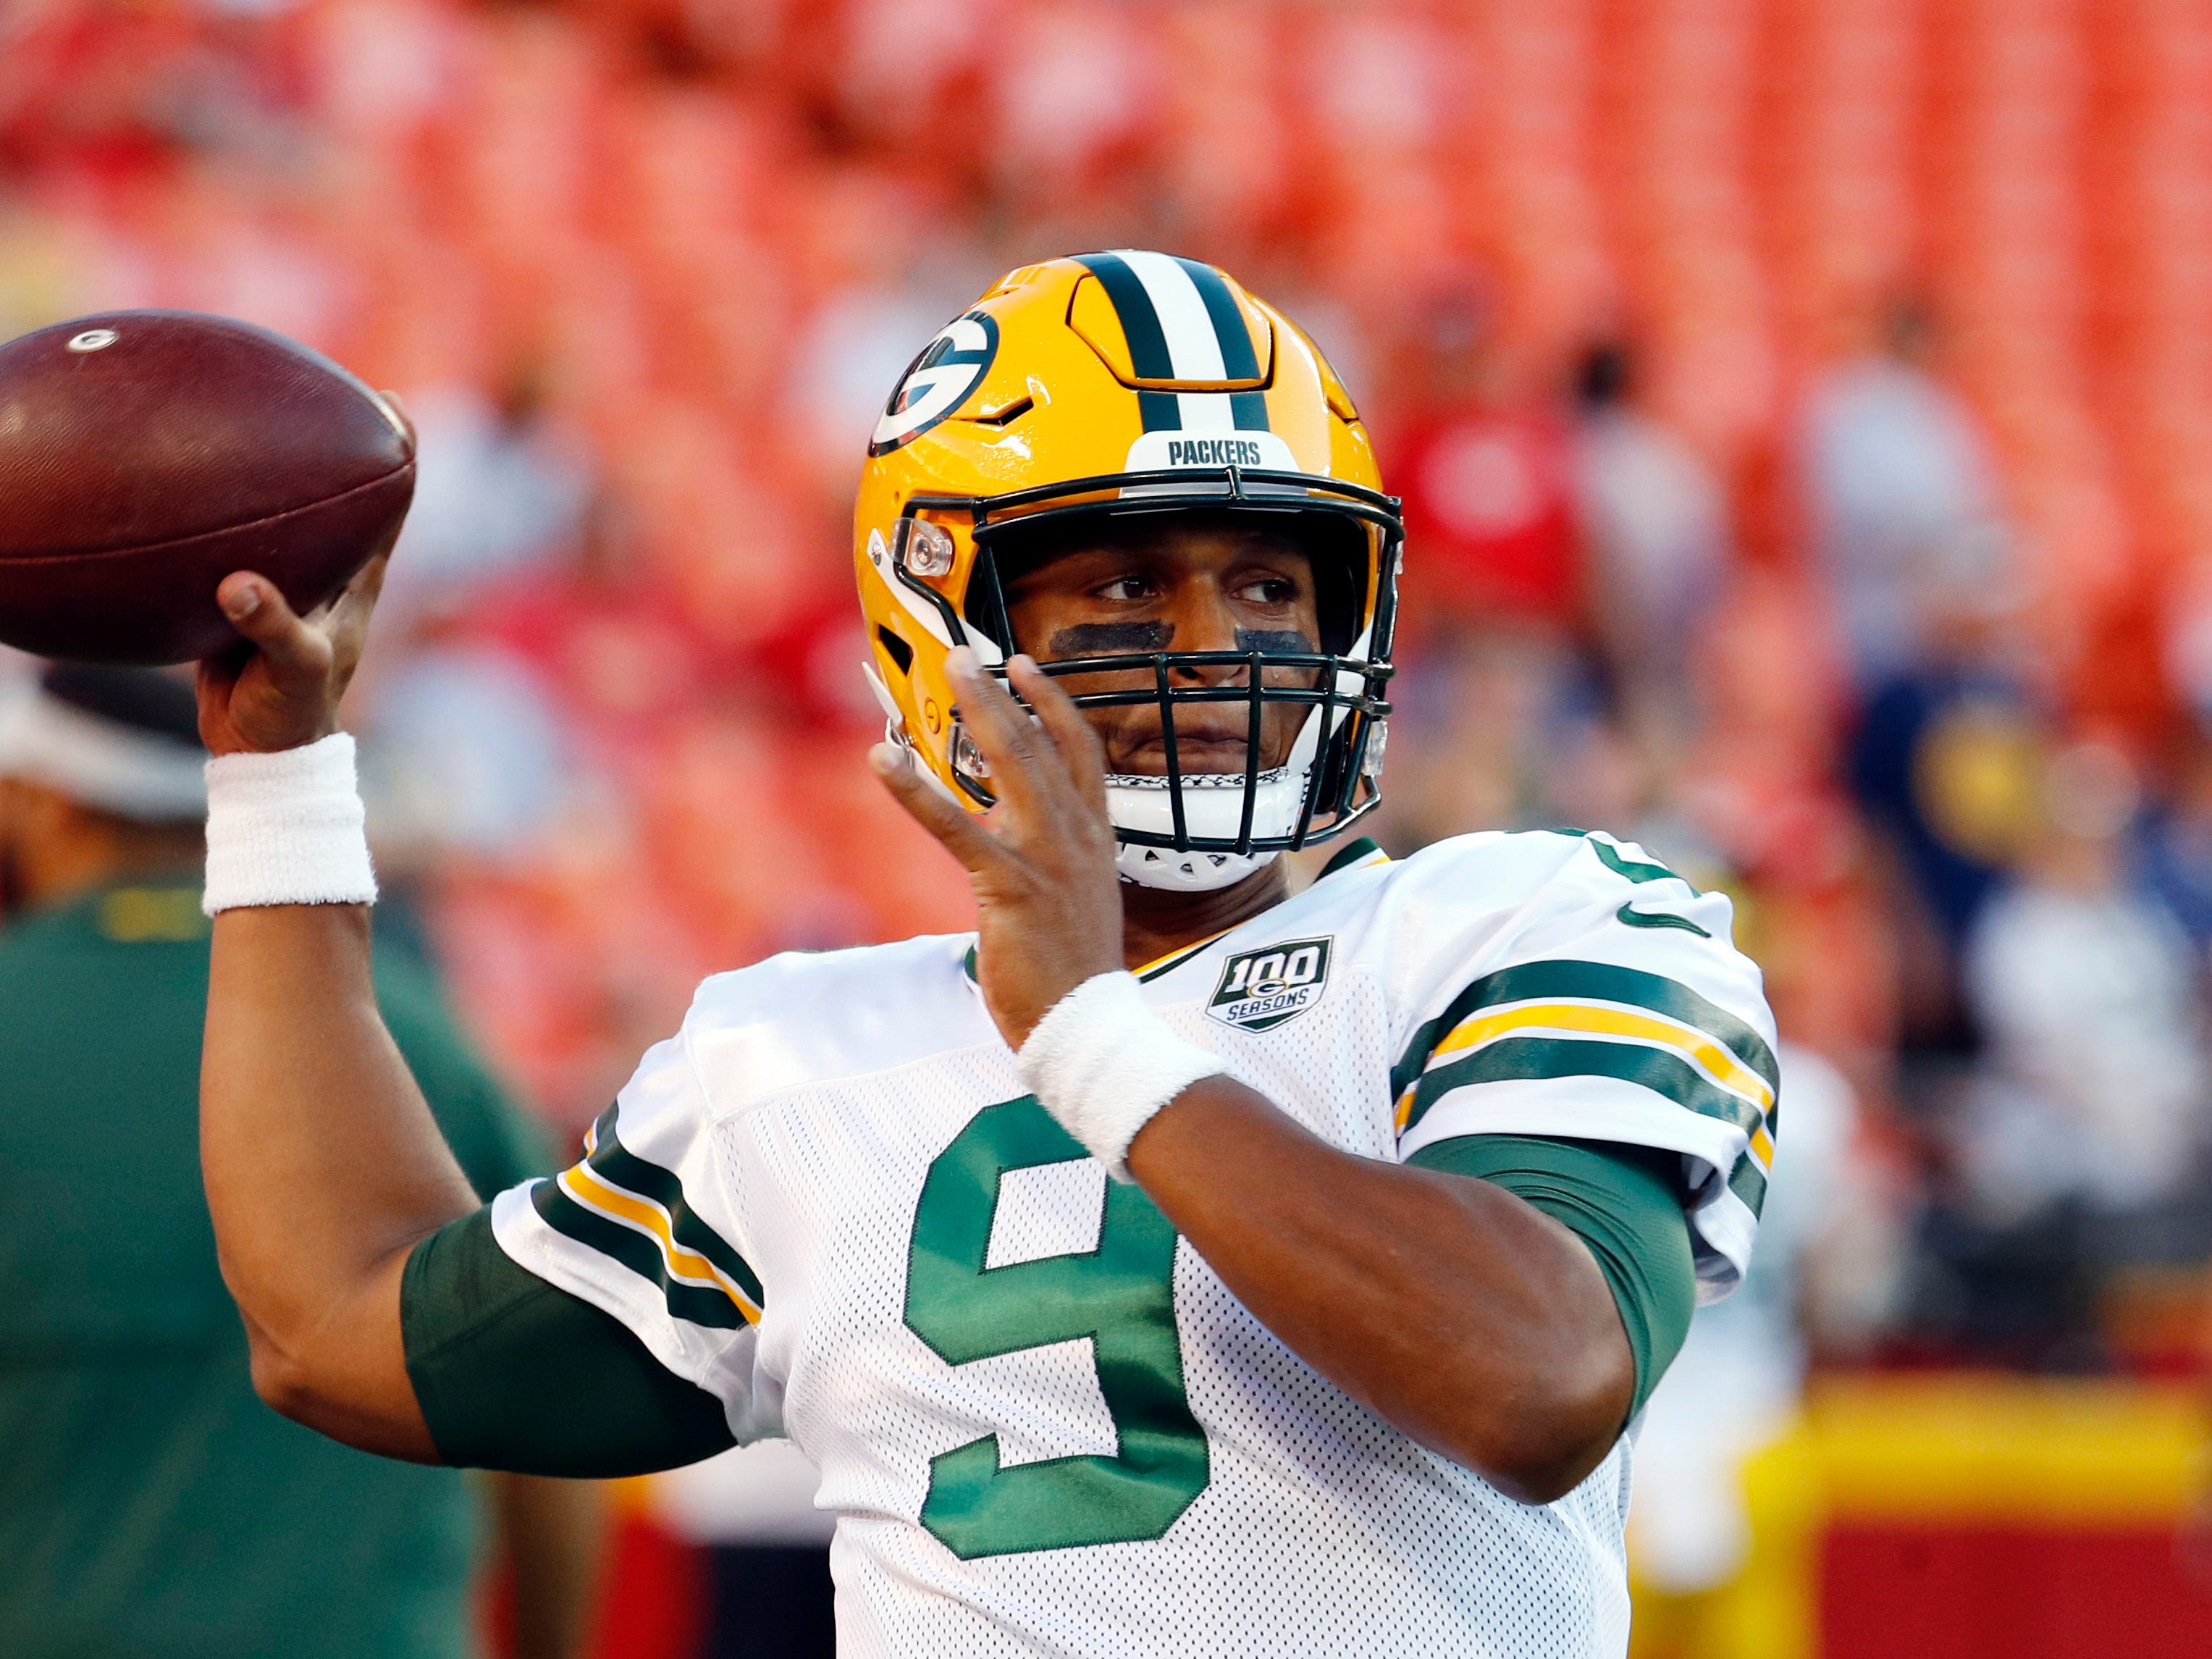 Green Bay Packers quarterback DeShone Kizer (9) warms up before an NFL preseason football game against the Kansas City Chiefs in Kansas City, Mo., Thursday, Aug. 30, 2018.